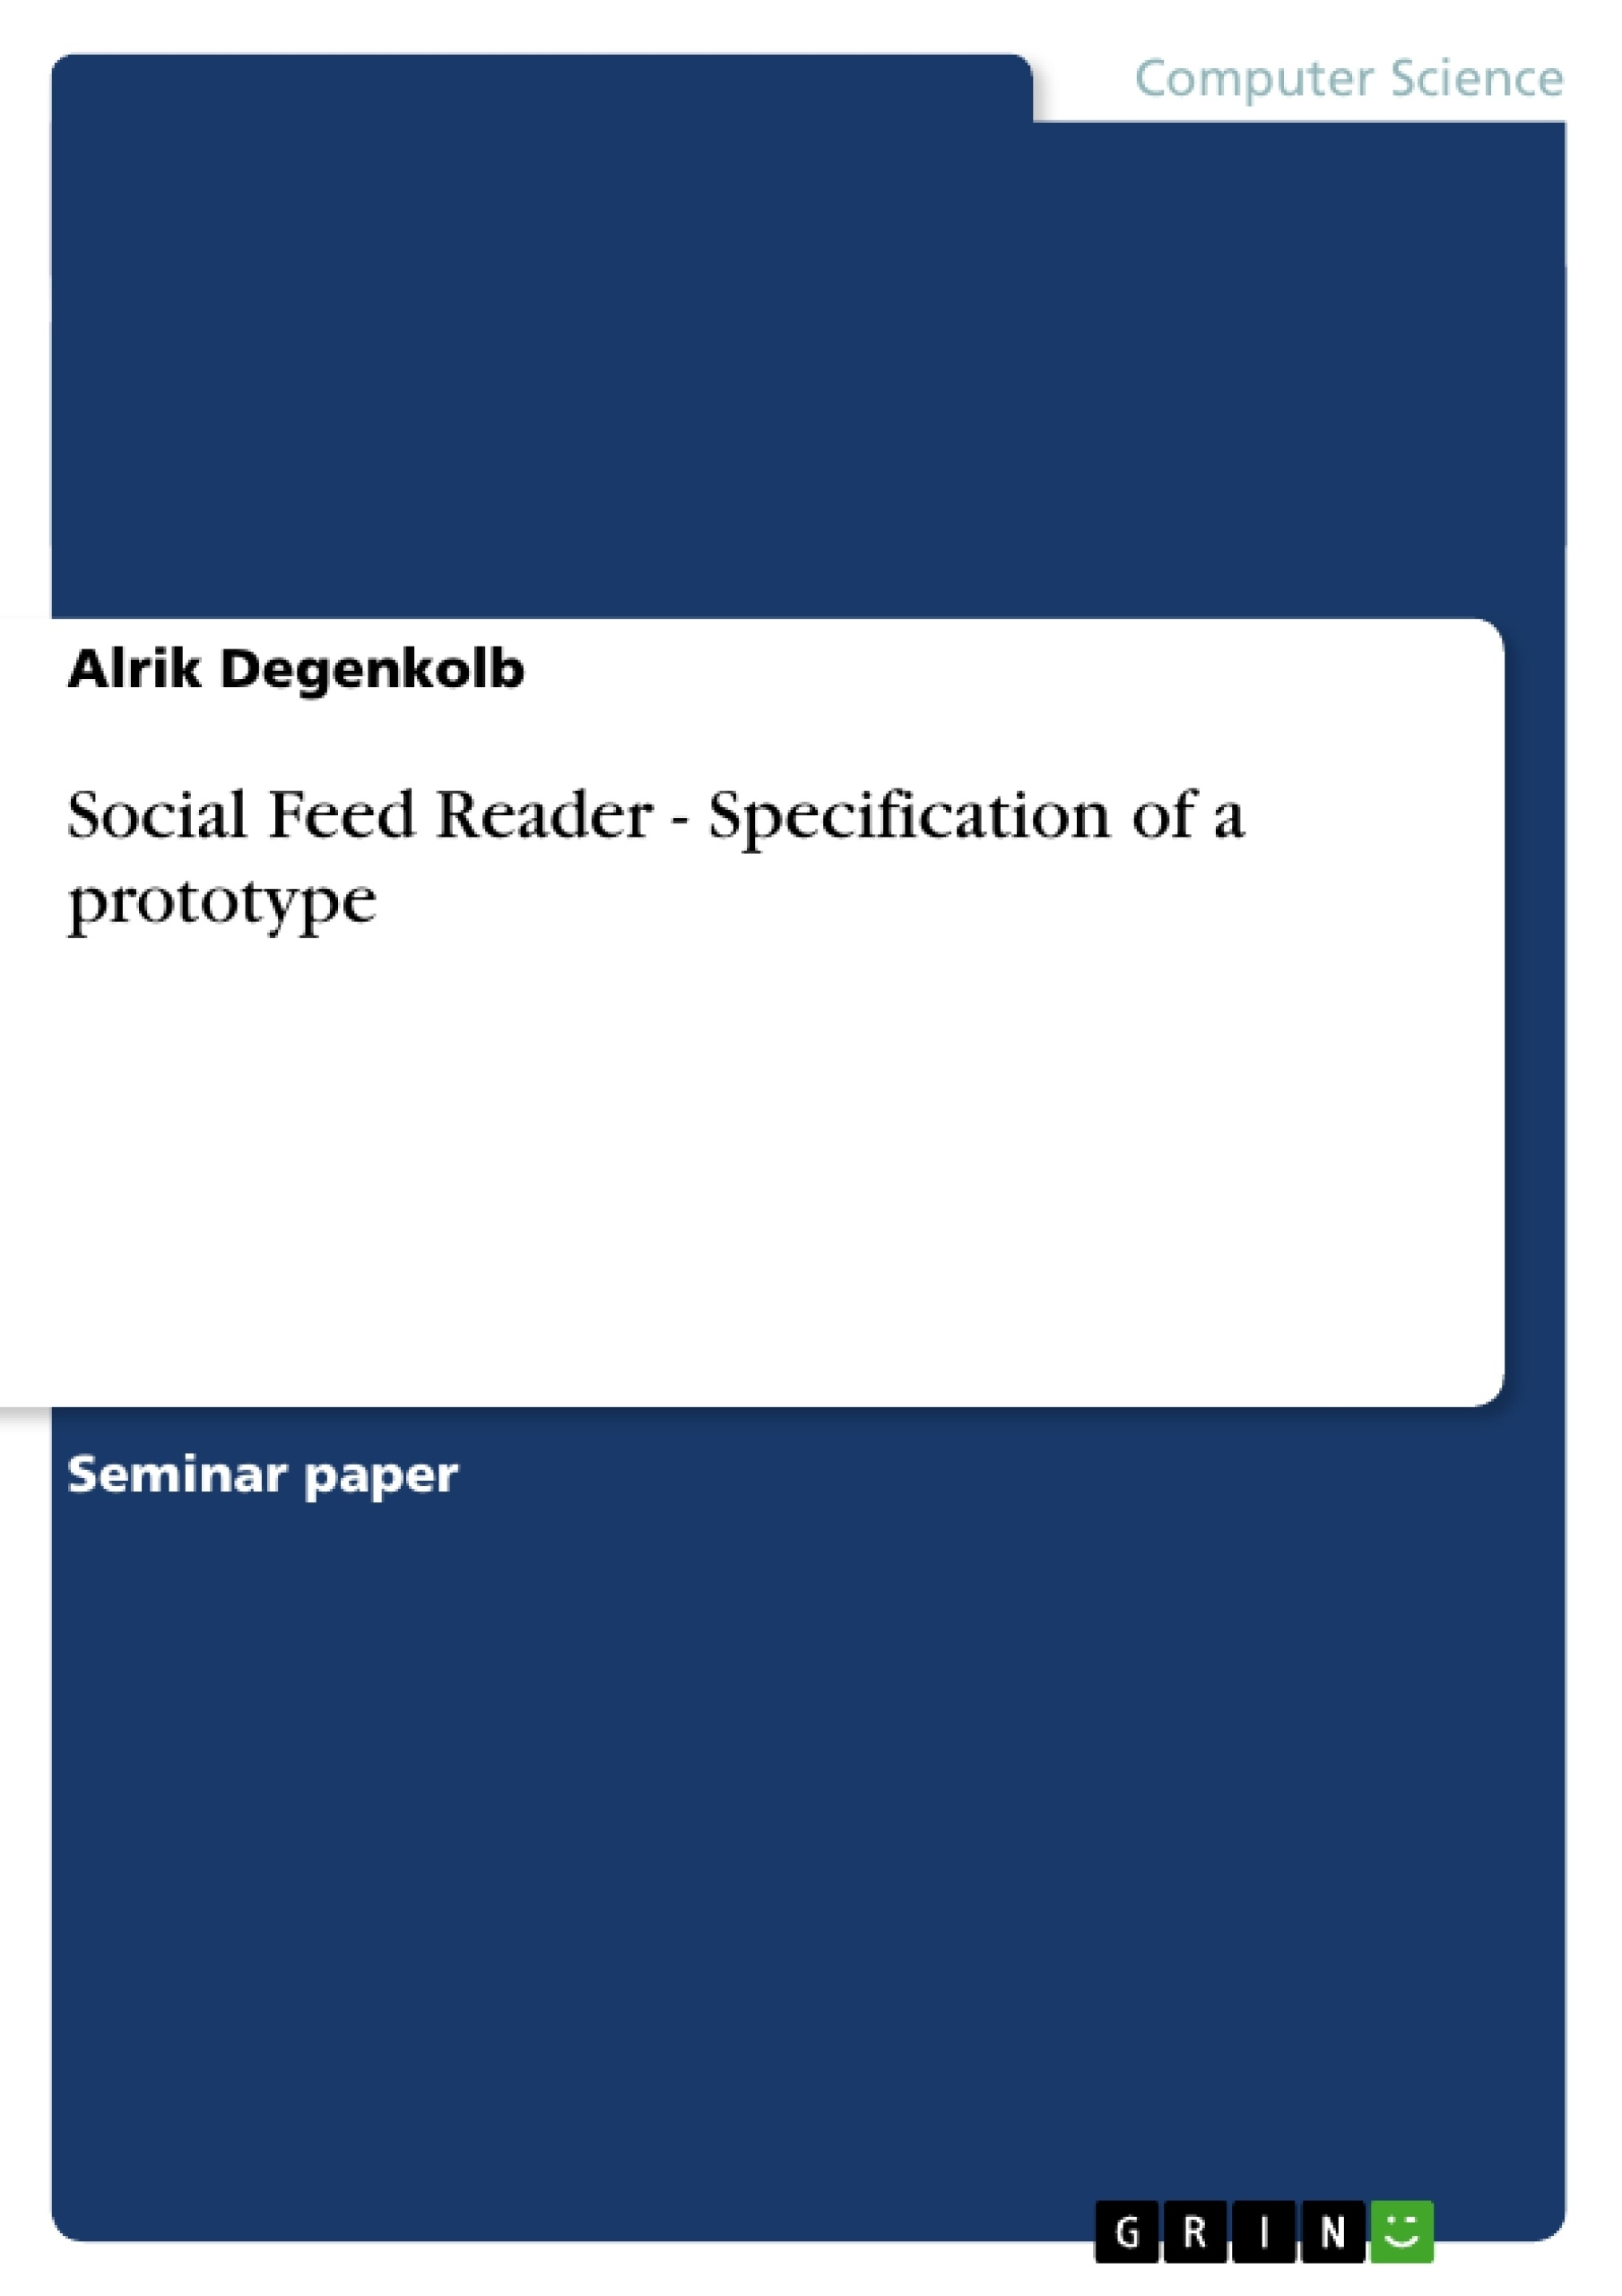 Title: Social Feed Reader - Specification of a prototype